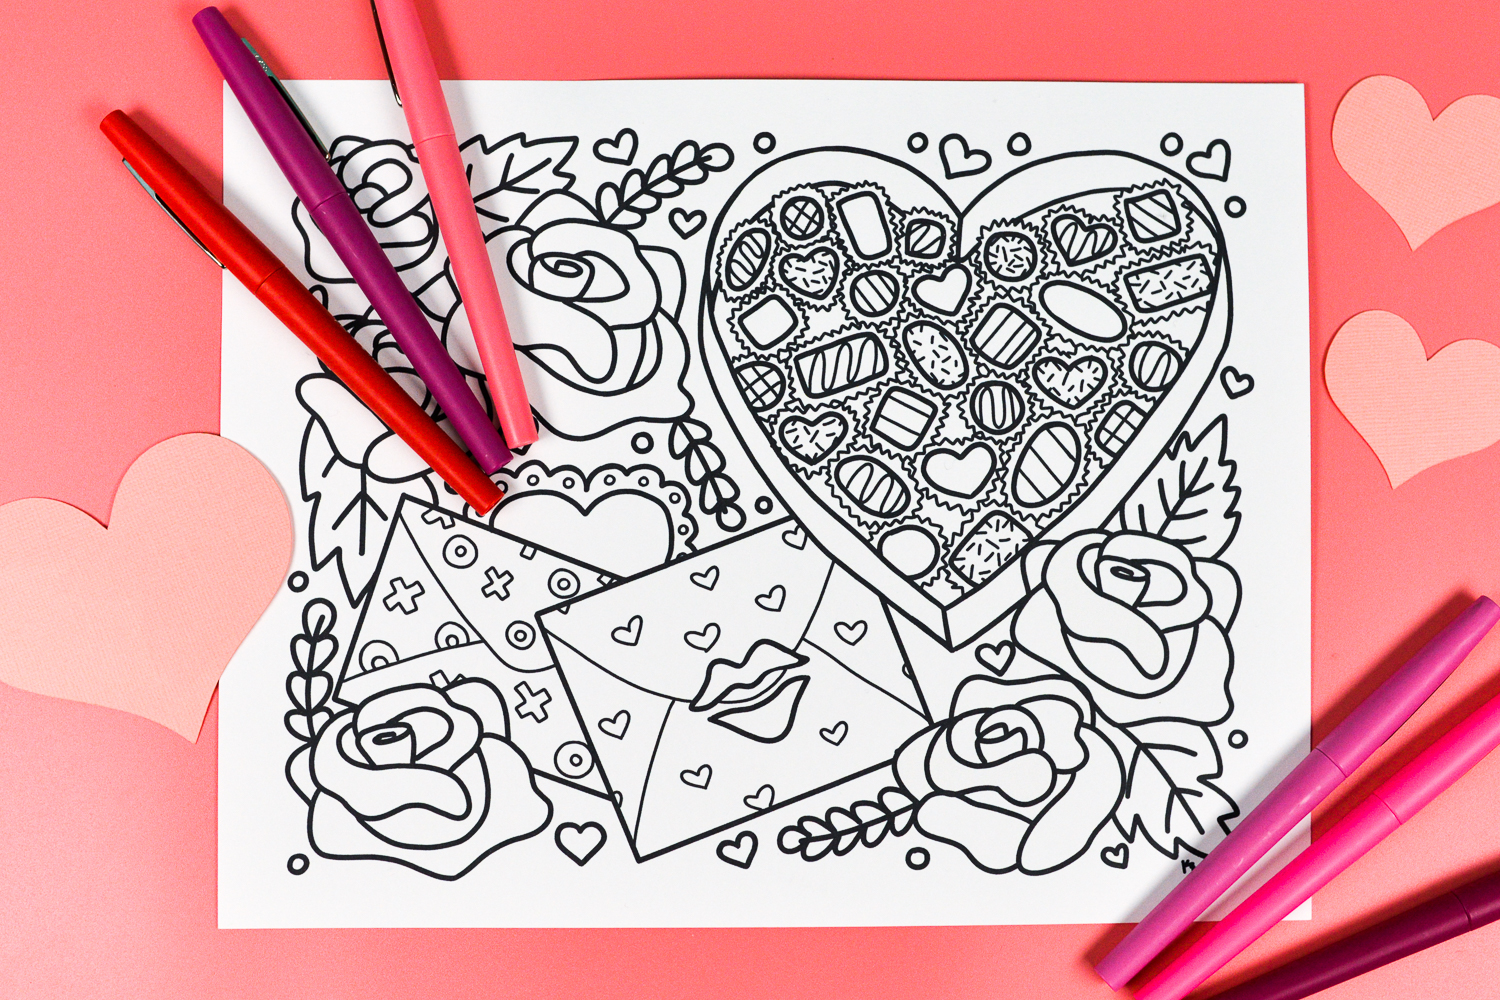 image regarding Free Printable Valentines Coloring Pages named Free of charge Printable Valentines Working day Coloring Web page - Hey, Makes it possible for